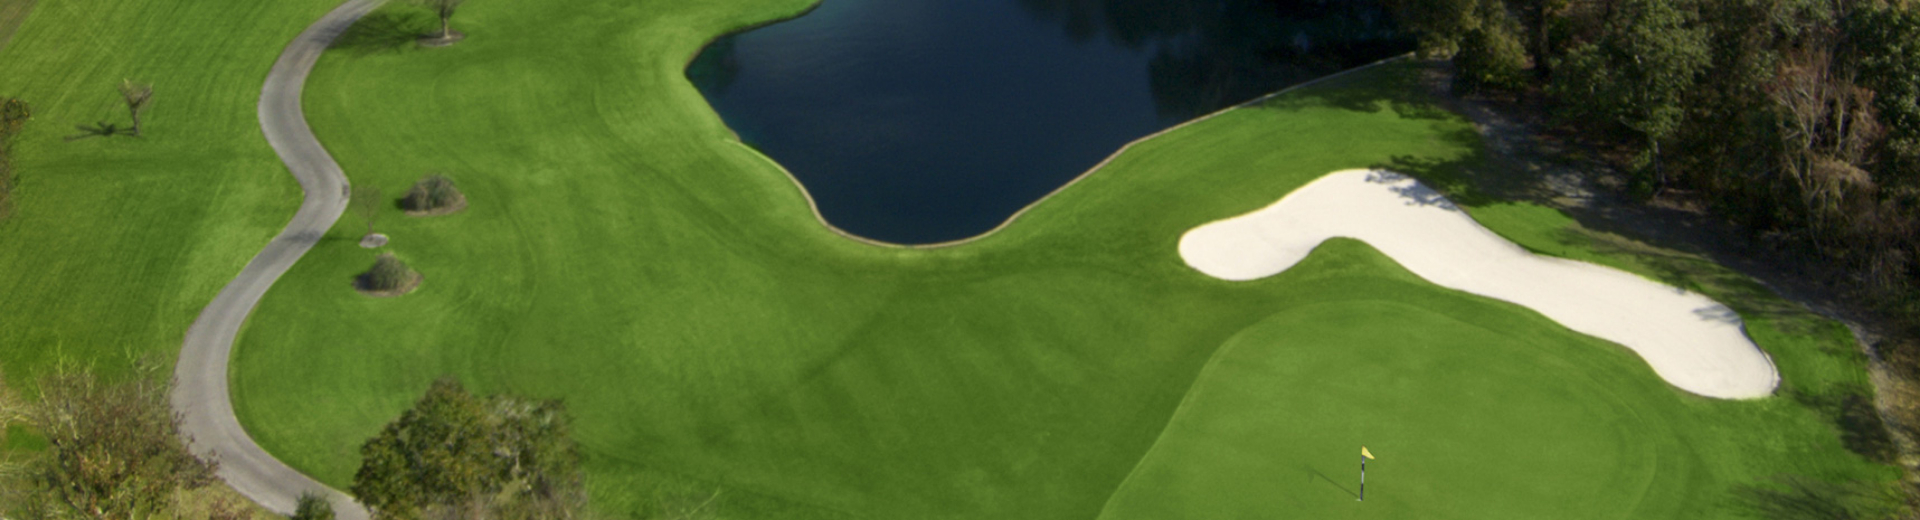 An aerial view of one of the holes on the course at Cypress Run